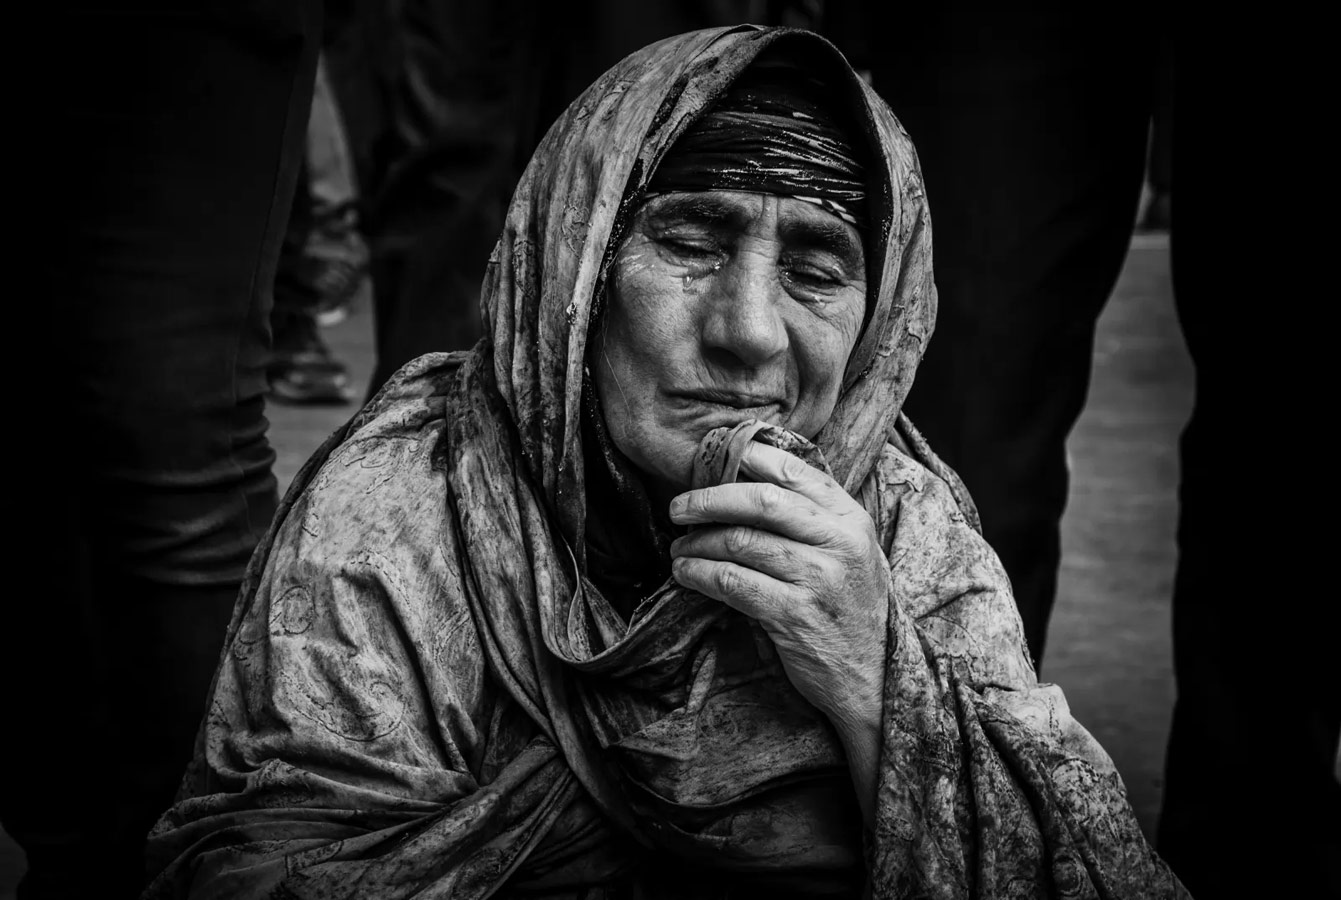 Tears in Her Eyes..., © Sadegh Amiri Hanzaki, Global Grand Prize Winner, Metro Photo Challenge